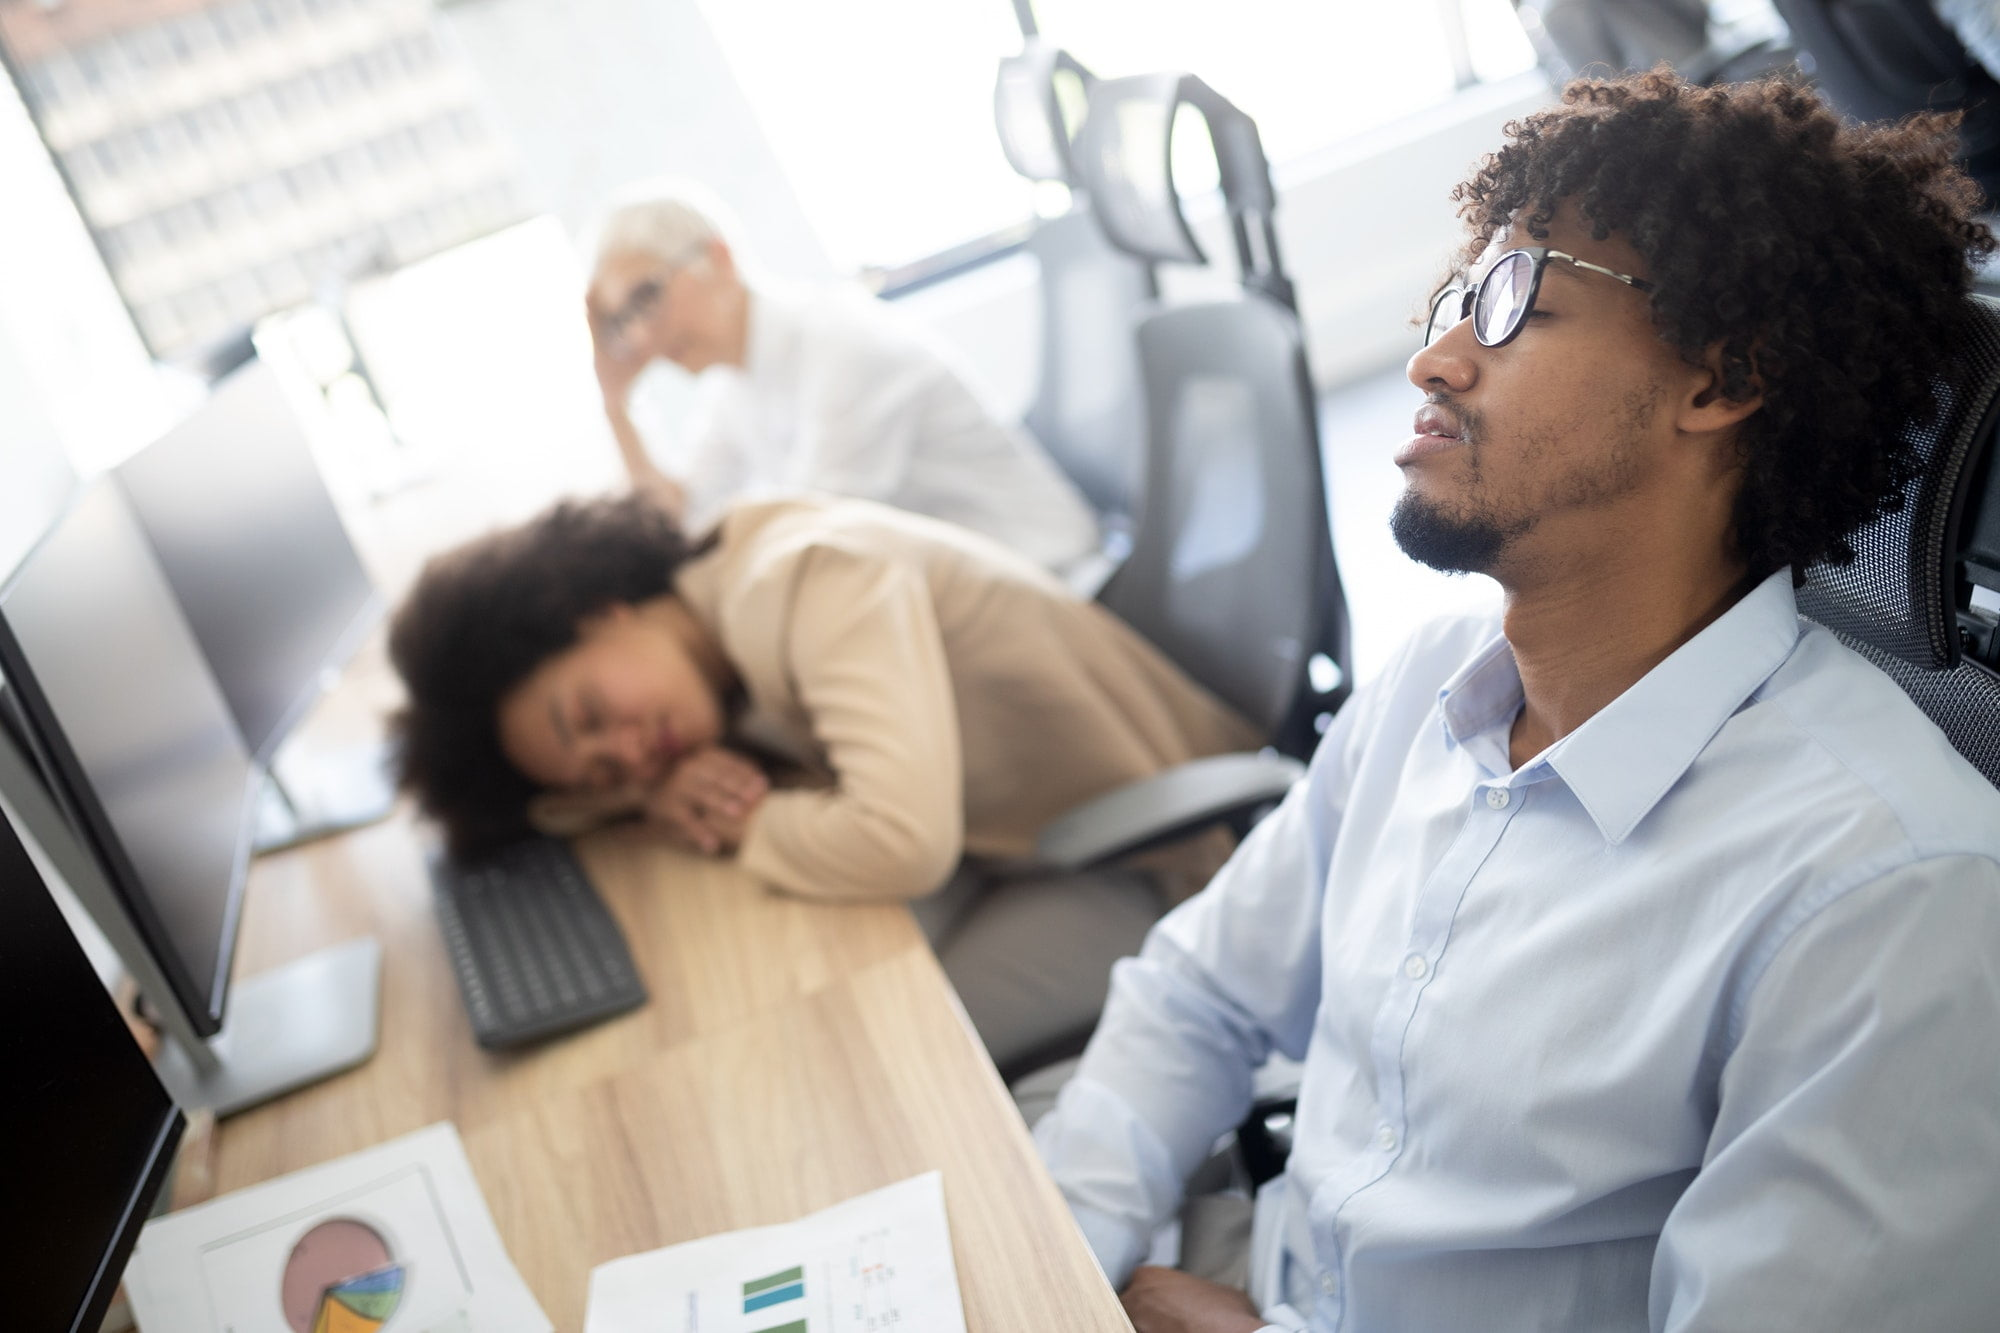 Overworking concept. Group of business people exhausted in office